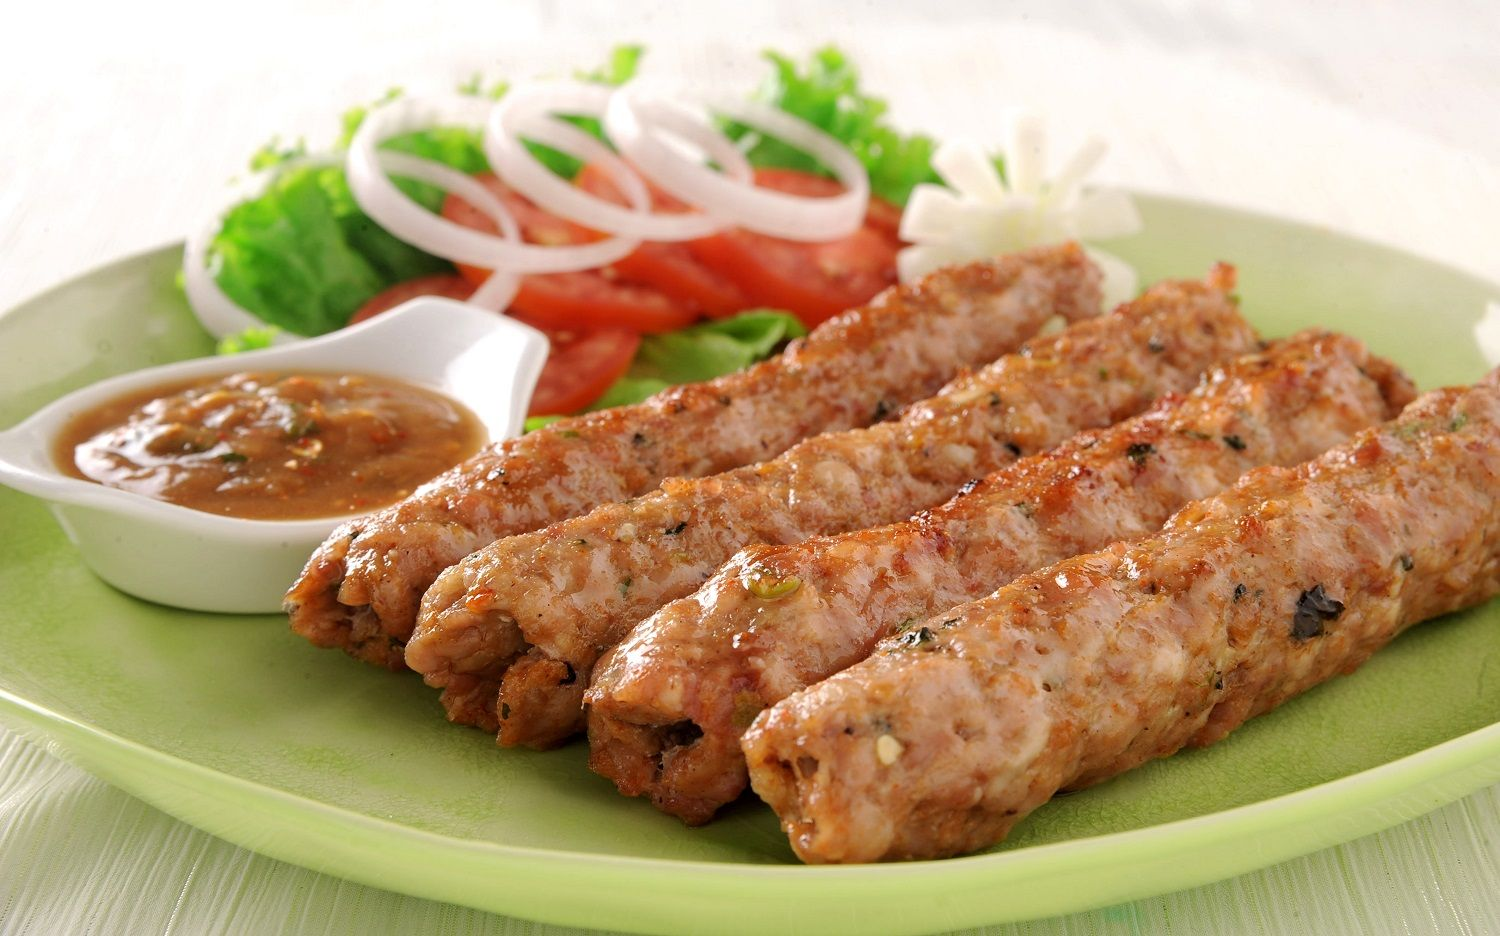 Halal Food Delivery From The Best Restaurants In Hk Beef Seekh Kabab Recipe Kebab Recipes Recipes